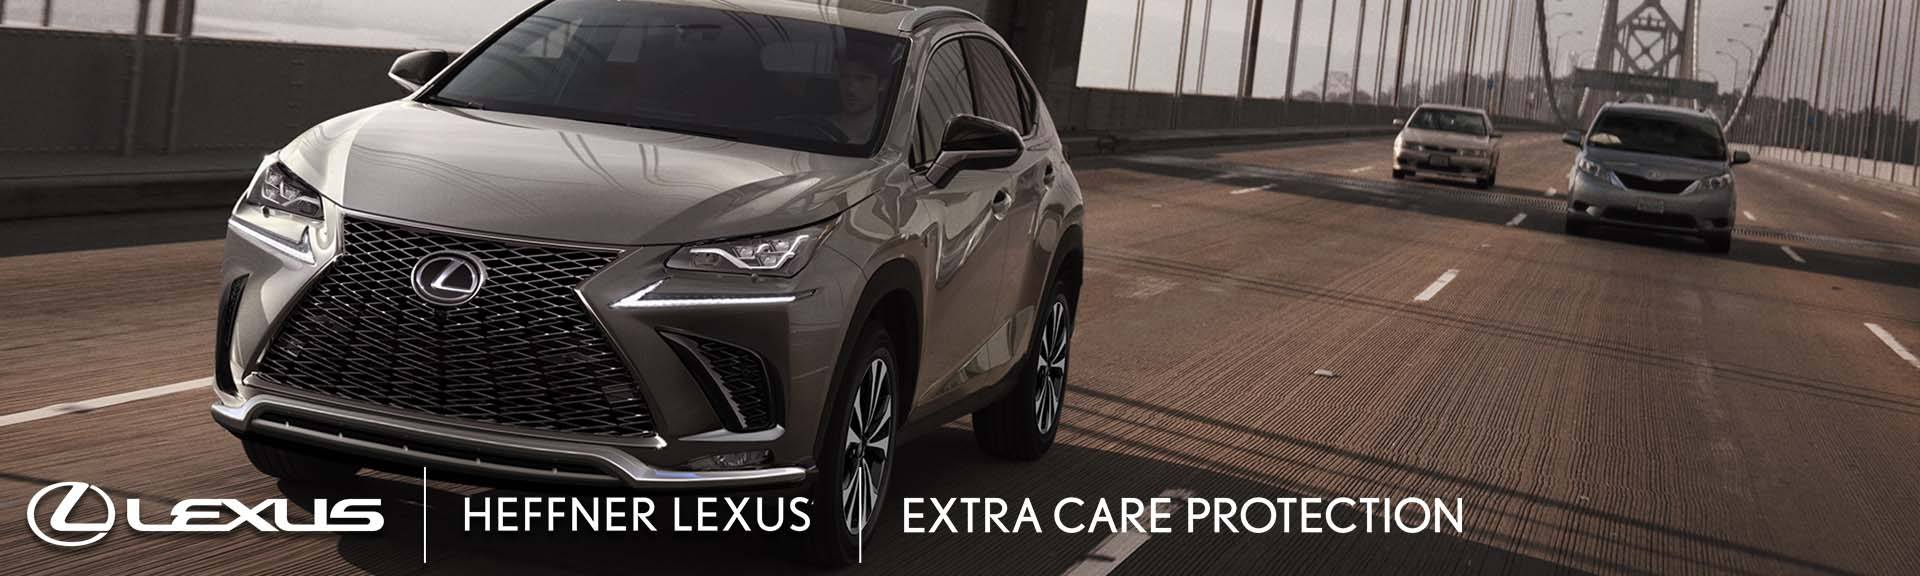 Heffner Lexus | Extra Care Protection